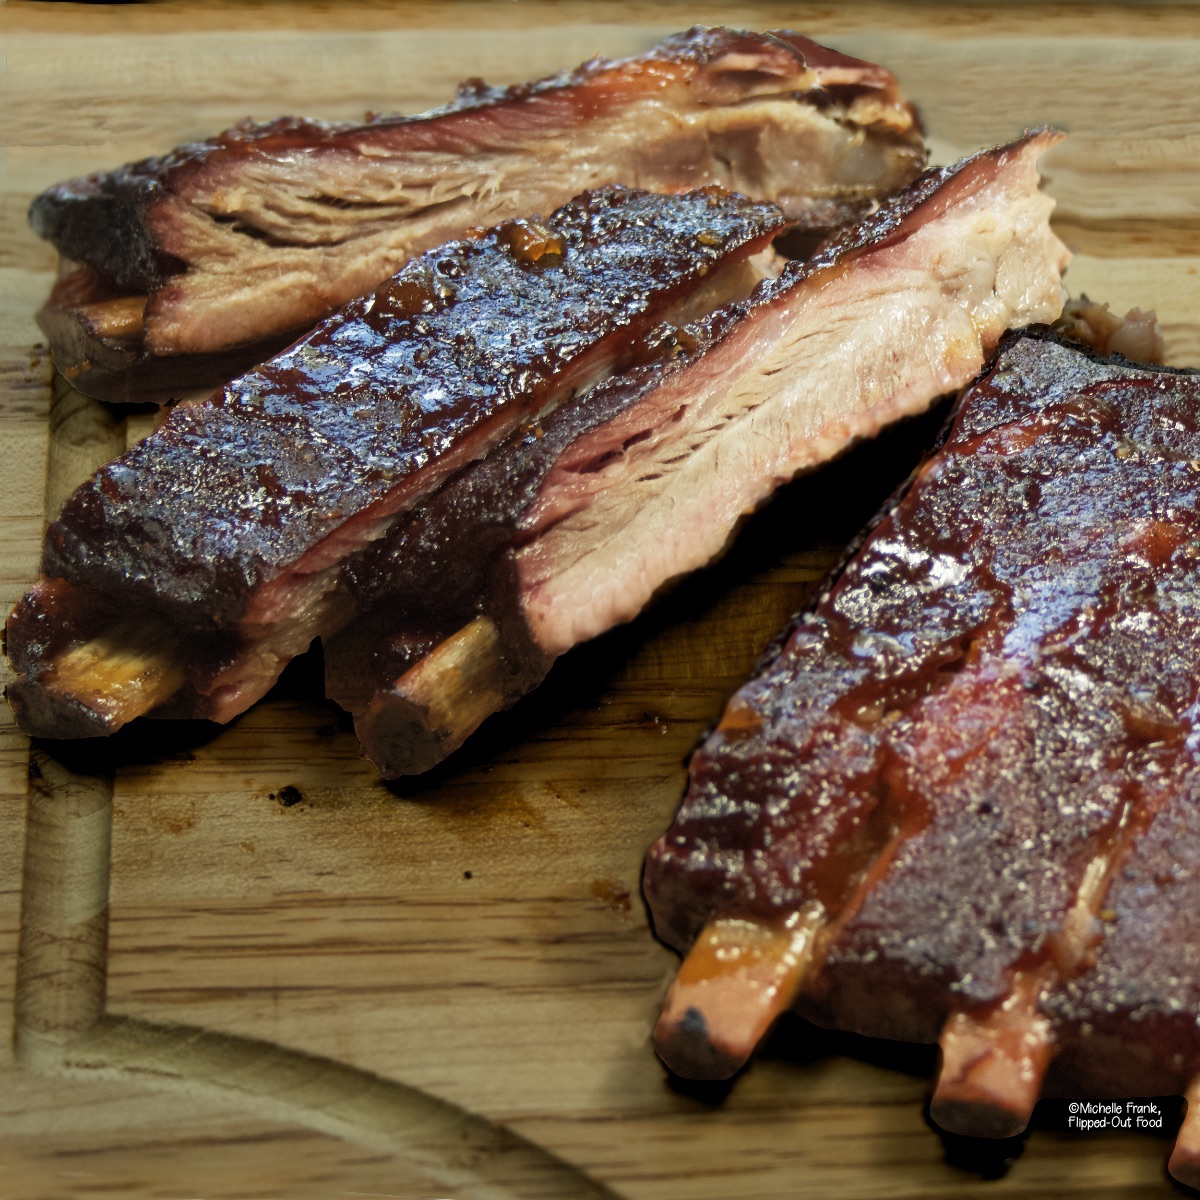 Close up side view of 3 ribs from a rack of ribs on a cutting board which shows the smoke ring and how juicy they look.